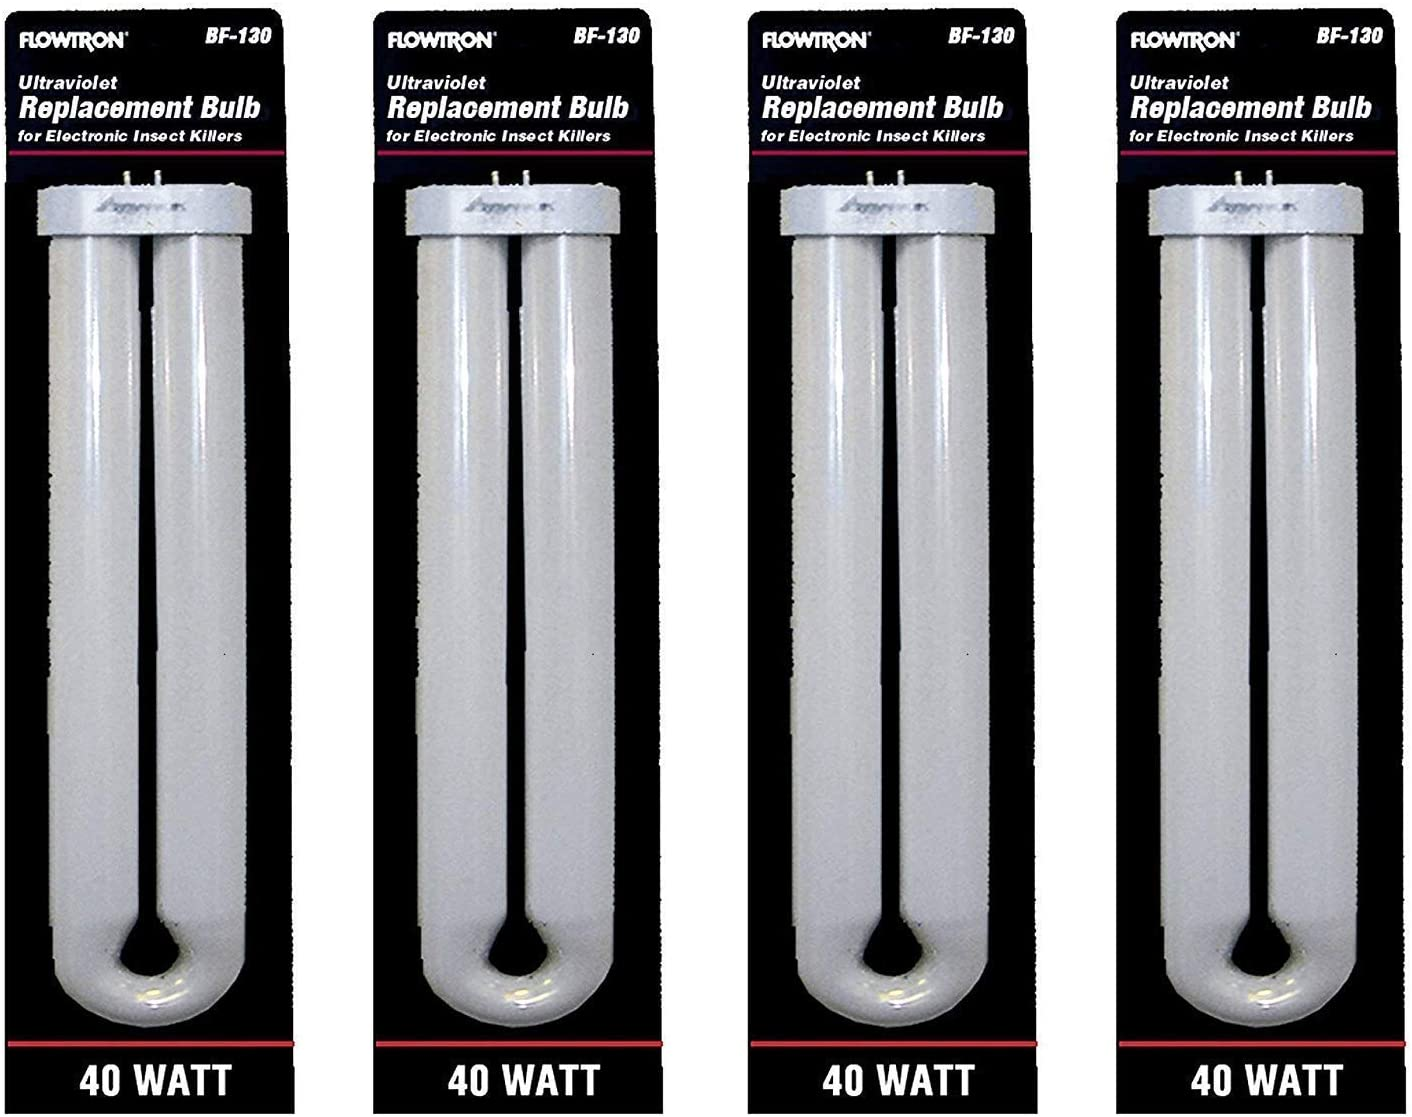 Flowtron BF-130 40 Watt U-Shape Replacement Bulb for FC7800 & FC8800 Models (Pack of 4)